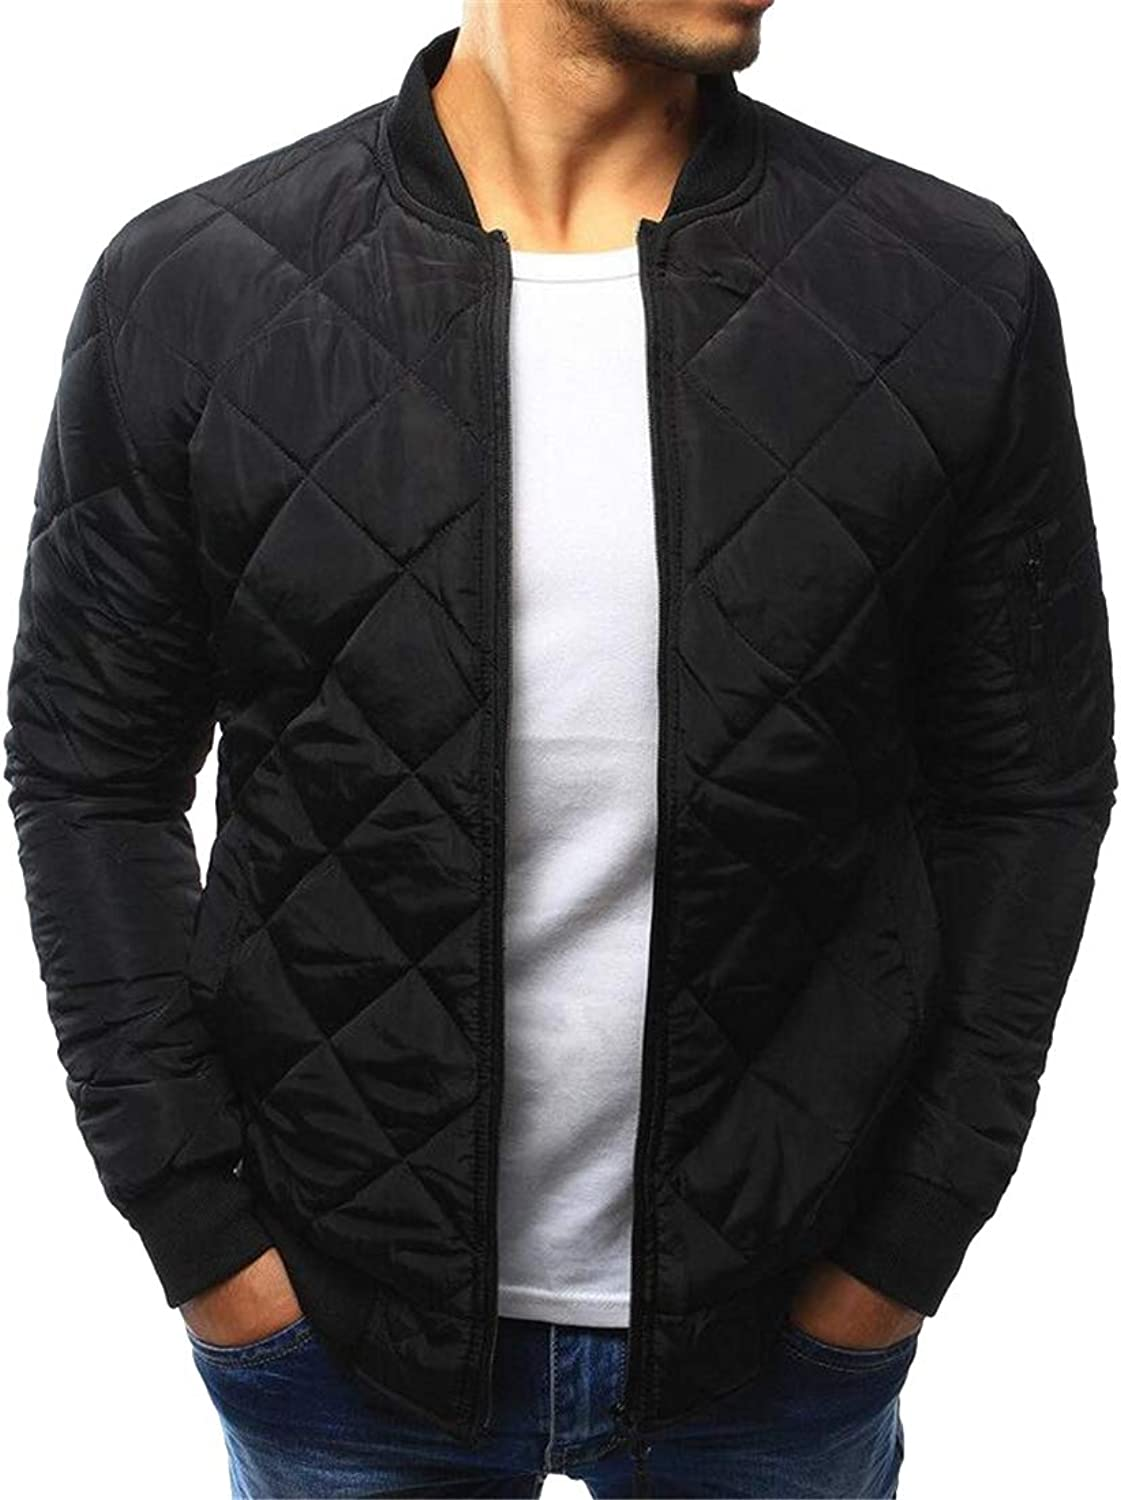 - Fubotevic Fubotevic Fubotevic Men's Fall Winter Quilted Solid Warm Thicken Full-Zip Bomber Jacket Baseball Coat Outerwear 64144a